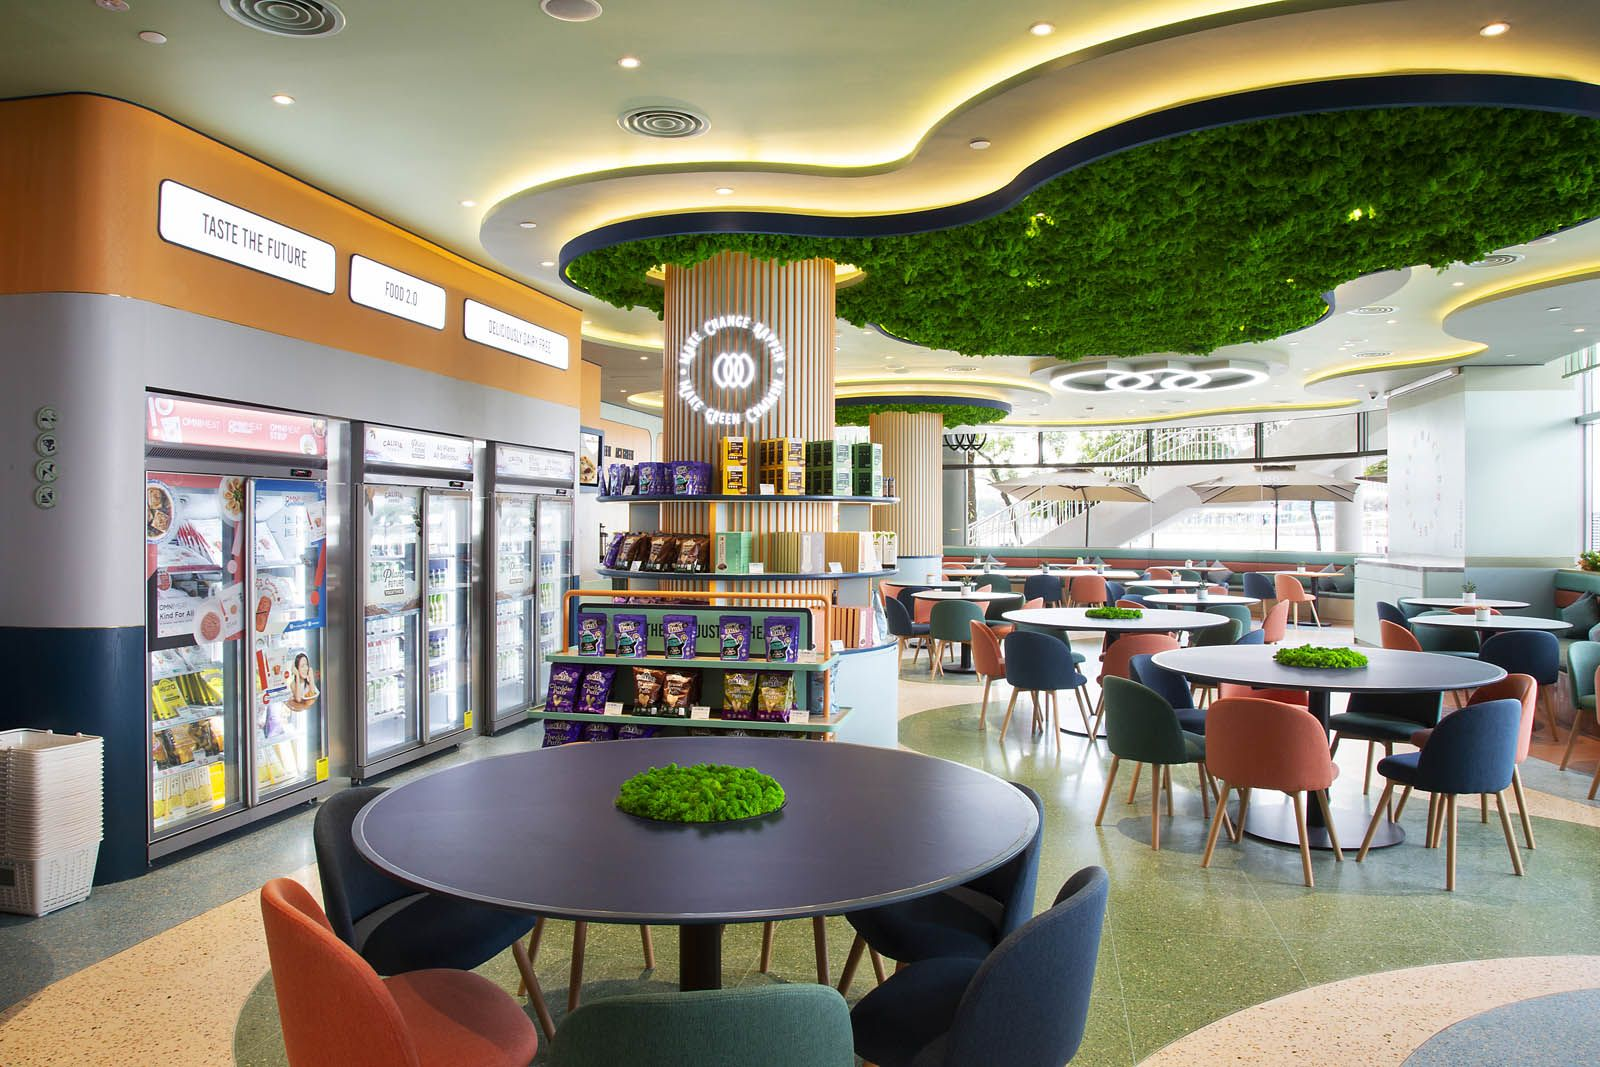 Green Common cafe and grocer